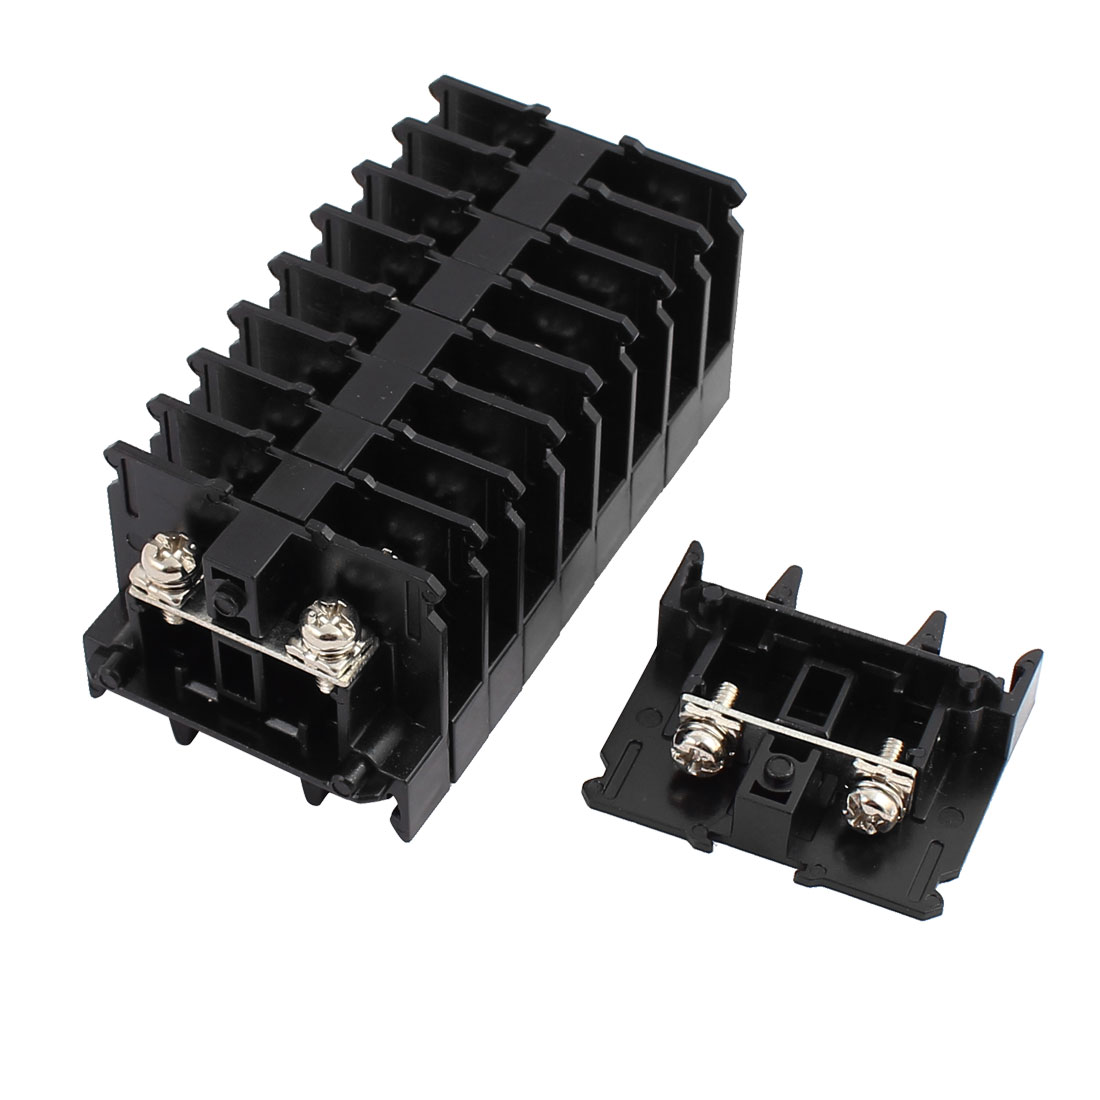 10 Pcs SN-15 600V 10A 2mm2 Screw Clamp Contact Din Rail Terminal Block